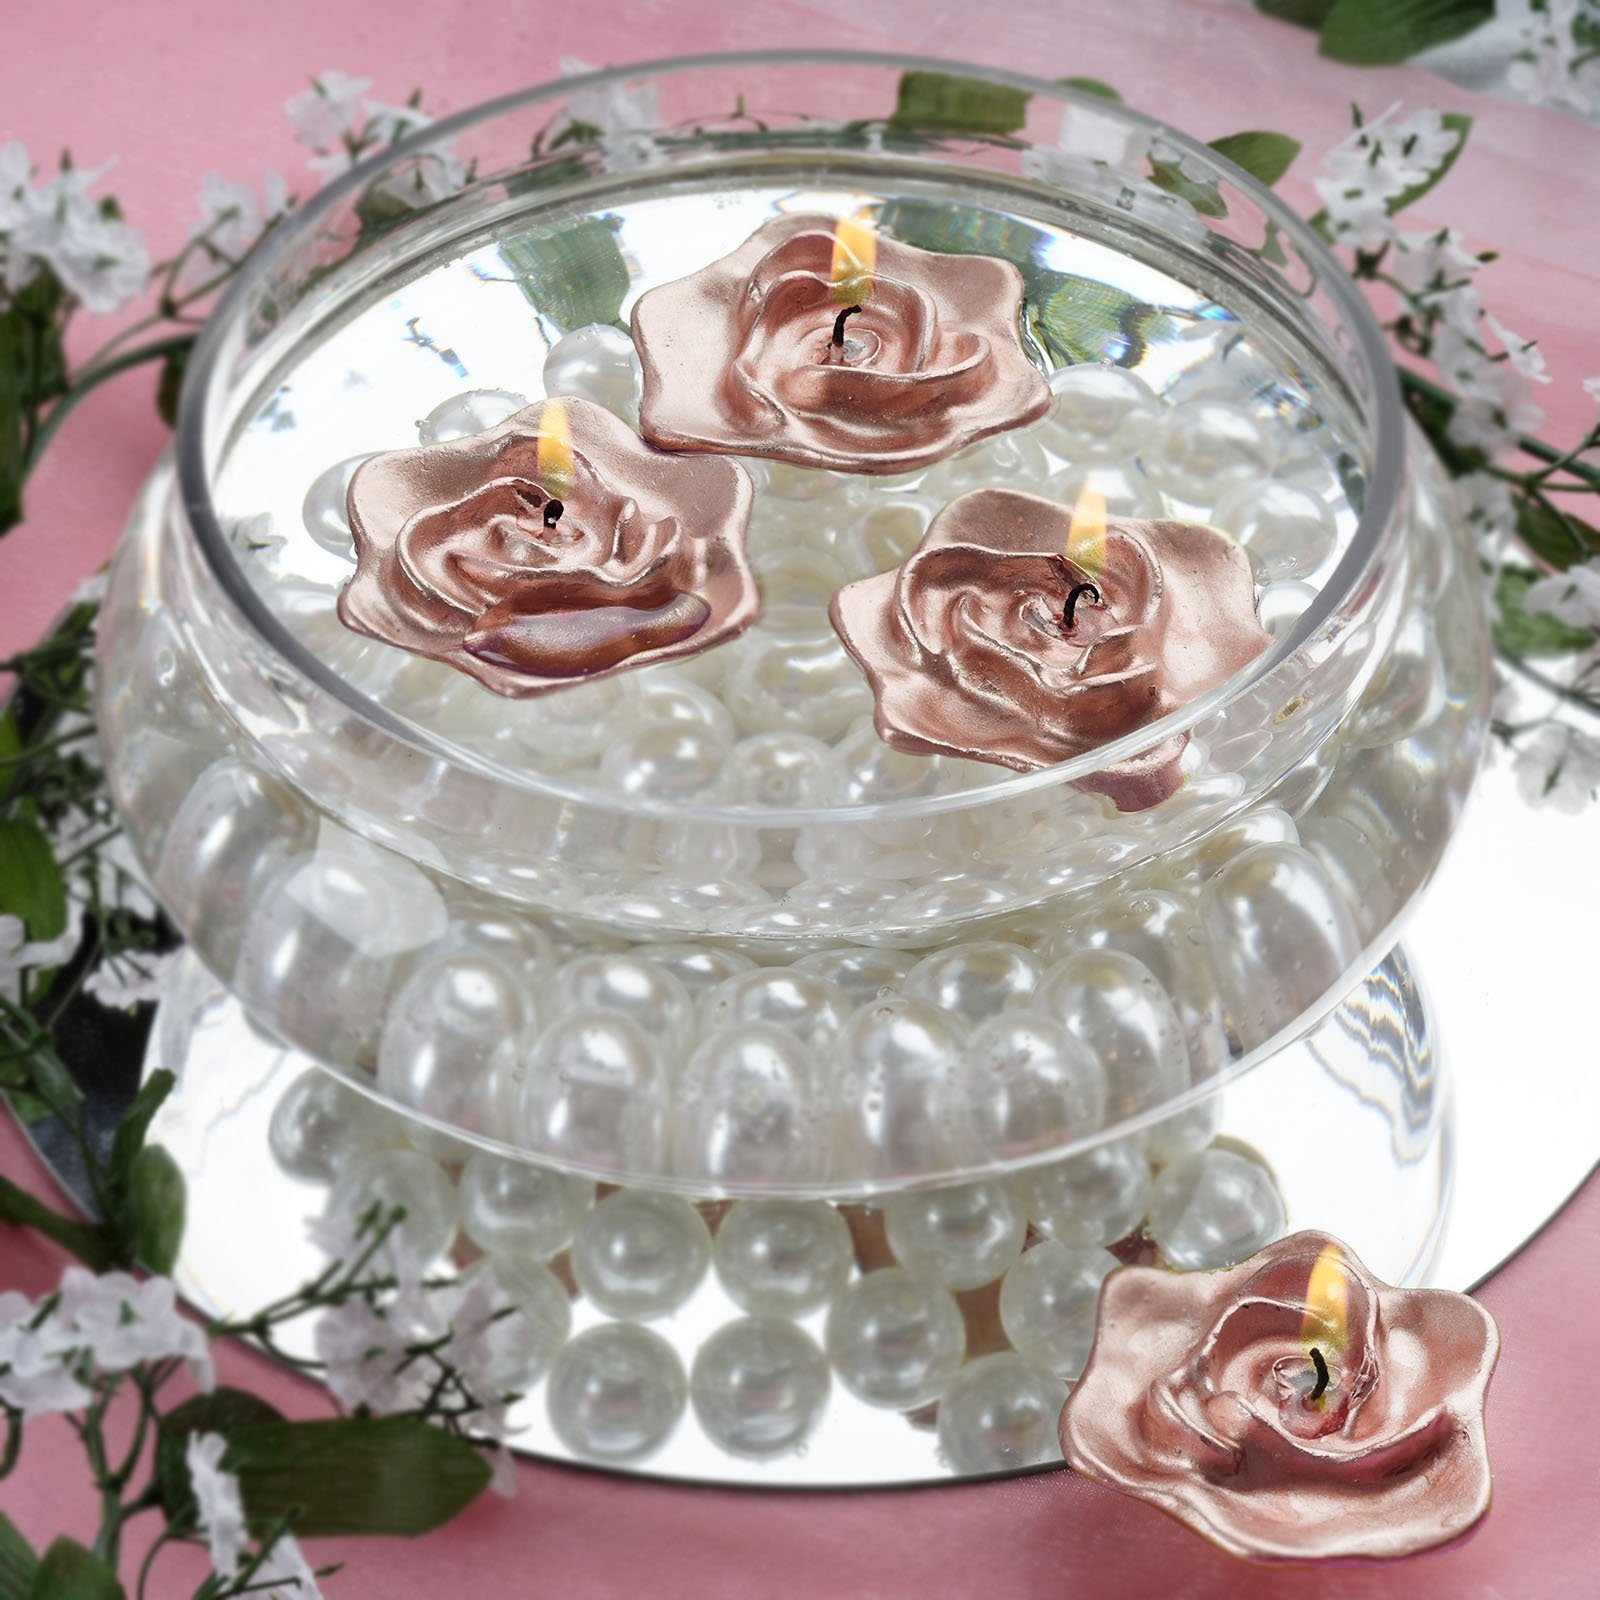 Floating Rose Centerpiece: 12 Wedding Roses Flowers Floating Candles Party Event